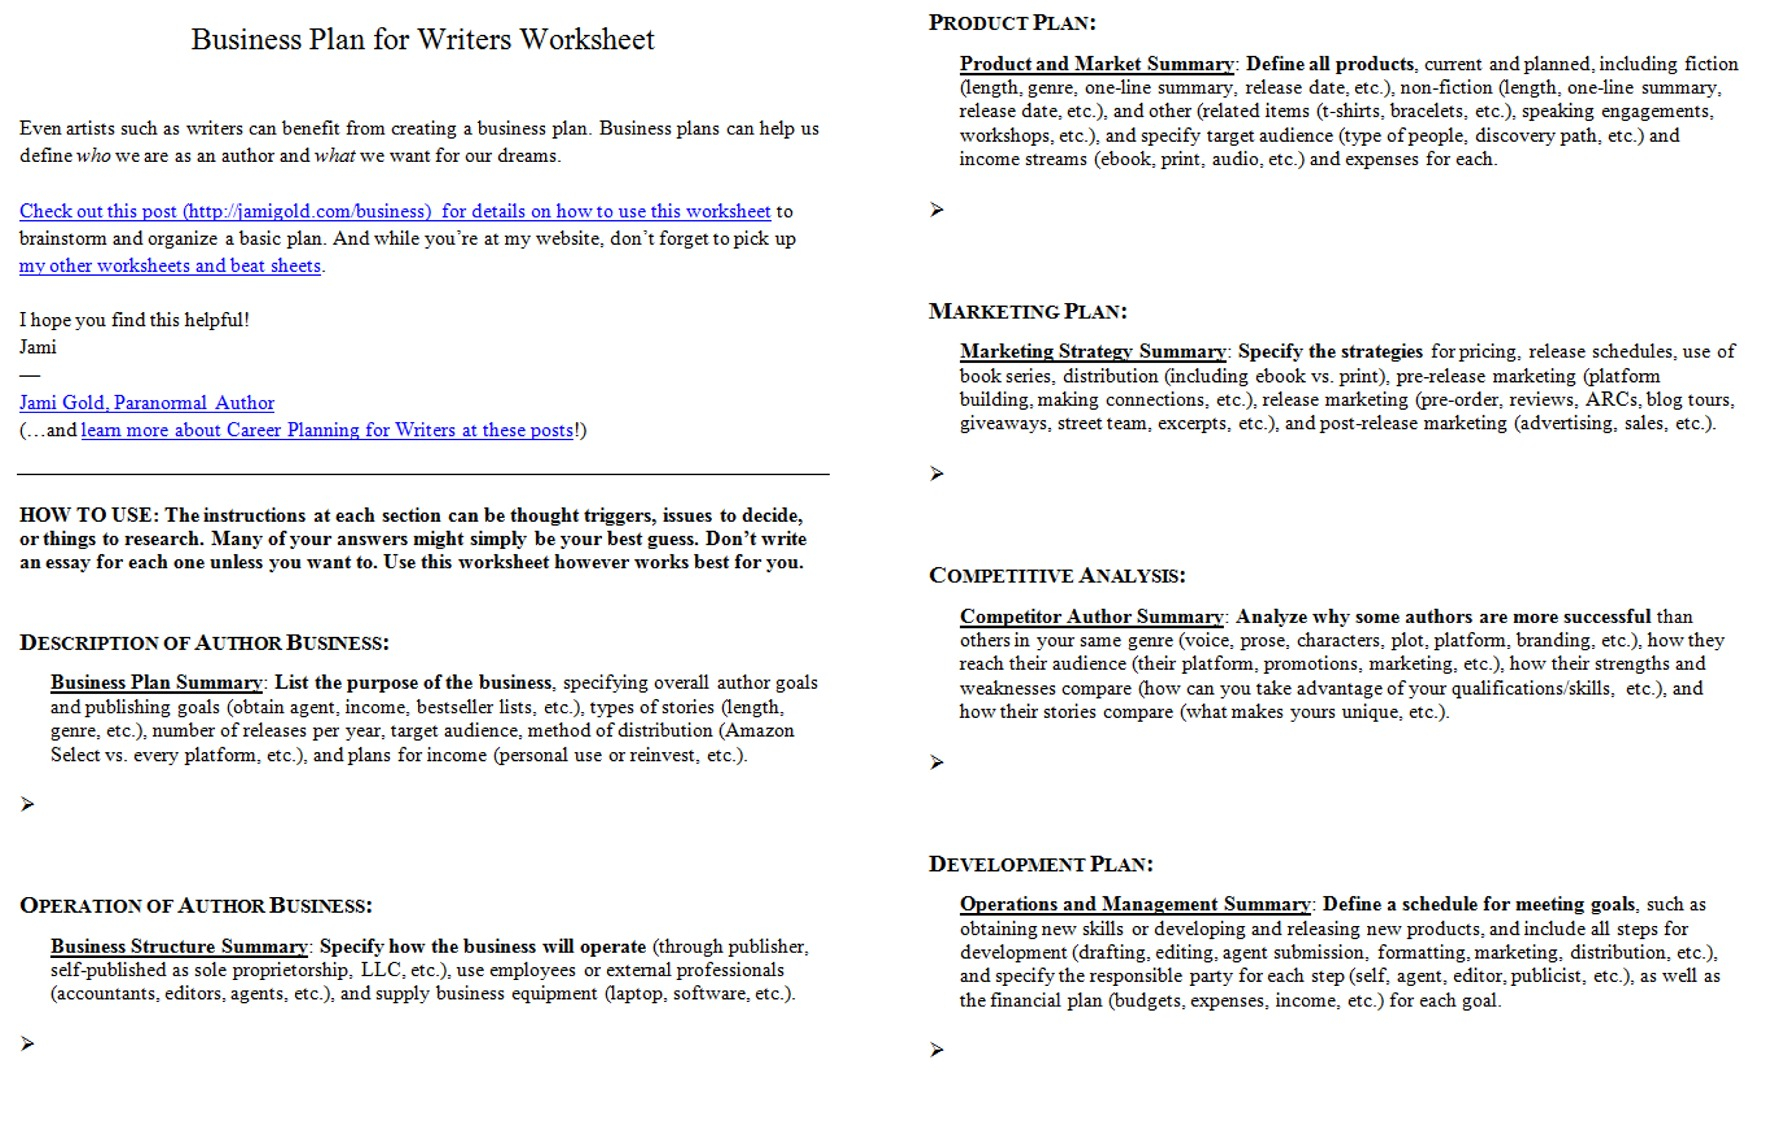 Proatmealus  Outstanding Worksheets For Writers  Jami Gold Paranormal Author With Inspiring Screen Shot Of Both Pages Of The Business Plan For Writers Worksheet With Lovely Sentence Worksheets For Nd Grade Also  Worksheet In Addition Math Plotting Points Worksheets And Two Way Tables Worksheets As Well As Three Little Pigs Sequencing Worksheet Additionally Non Standard Measurement Worksheet From Jamigoldcom With Proatmealus  Inspiring Worksheets For Writers  Jami Gold Paranormal Author With Lovely Screen Shot Of Both Pages Of The Business Plan For Writers Worksheet And Outstanding Sentence Worksheets For Nd Grade Also  Worksheet In Addition Math Plotting Points Worksheets From Jamigoldcom